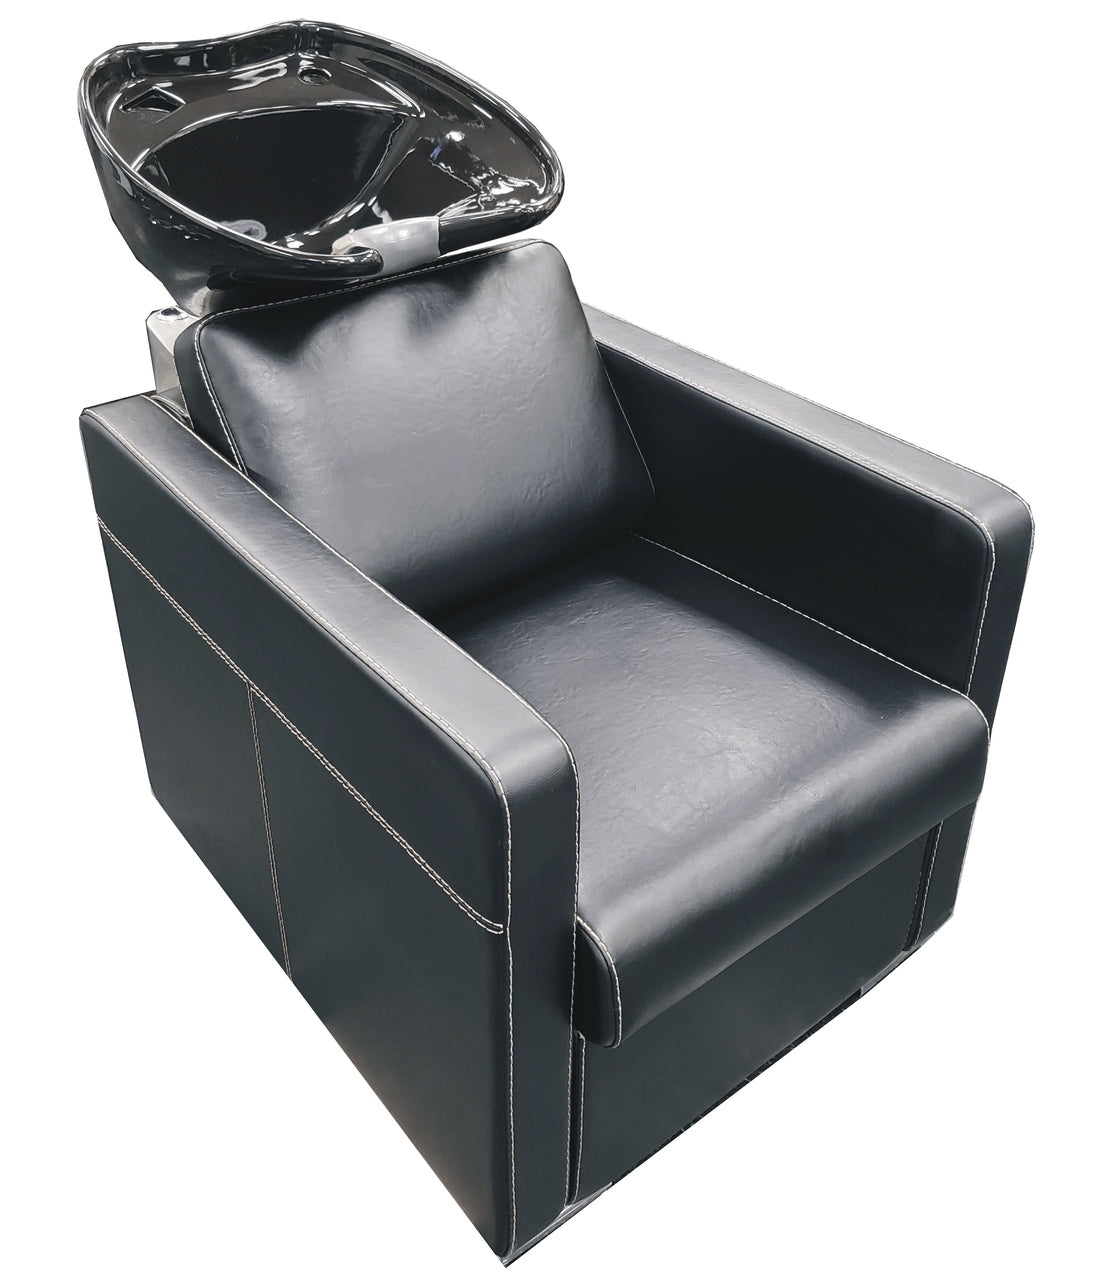 Shampoo backwash combo has a chair with a tilting bowl mounted behind. Quality vinyl chair with just the right padding for ultimate comfort. The bowl adjusts to the client, no need to slouch in the chair.